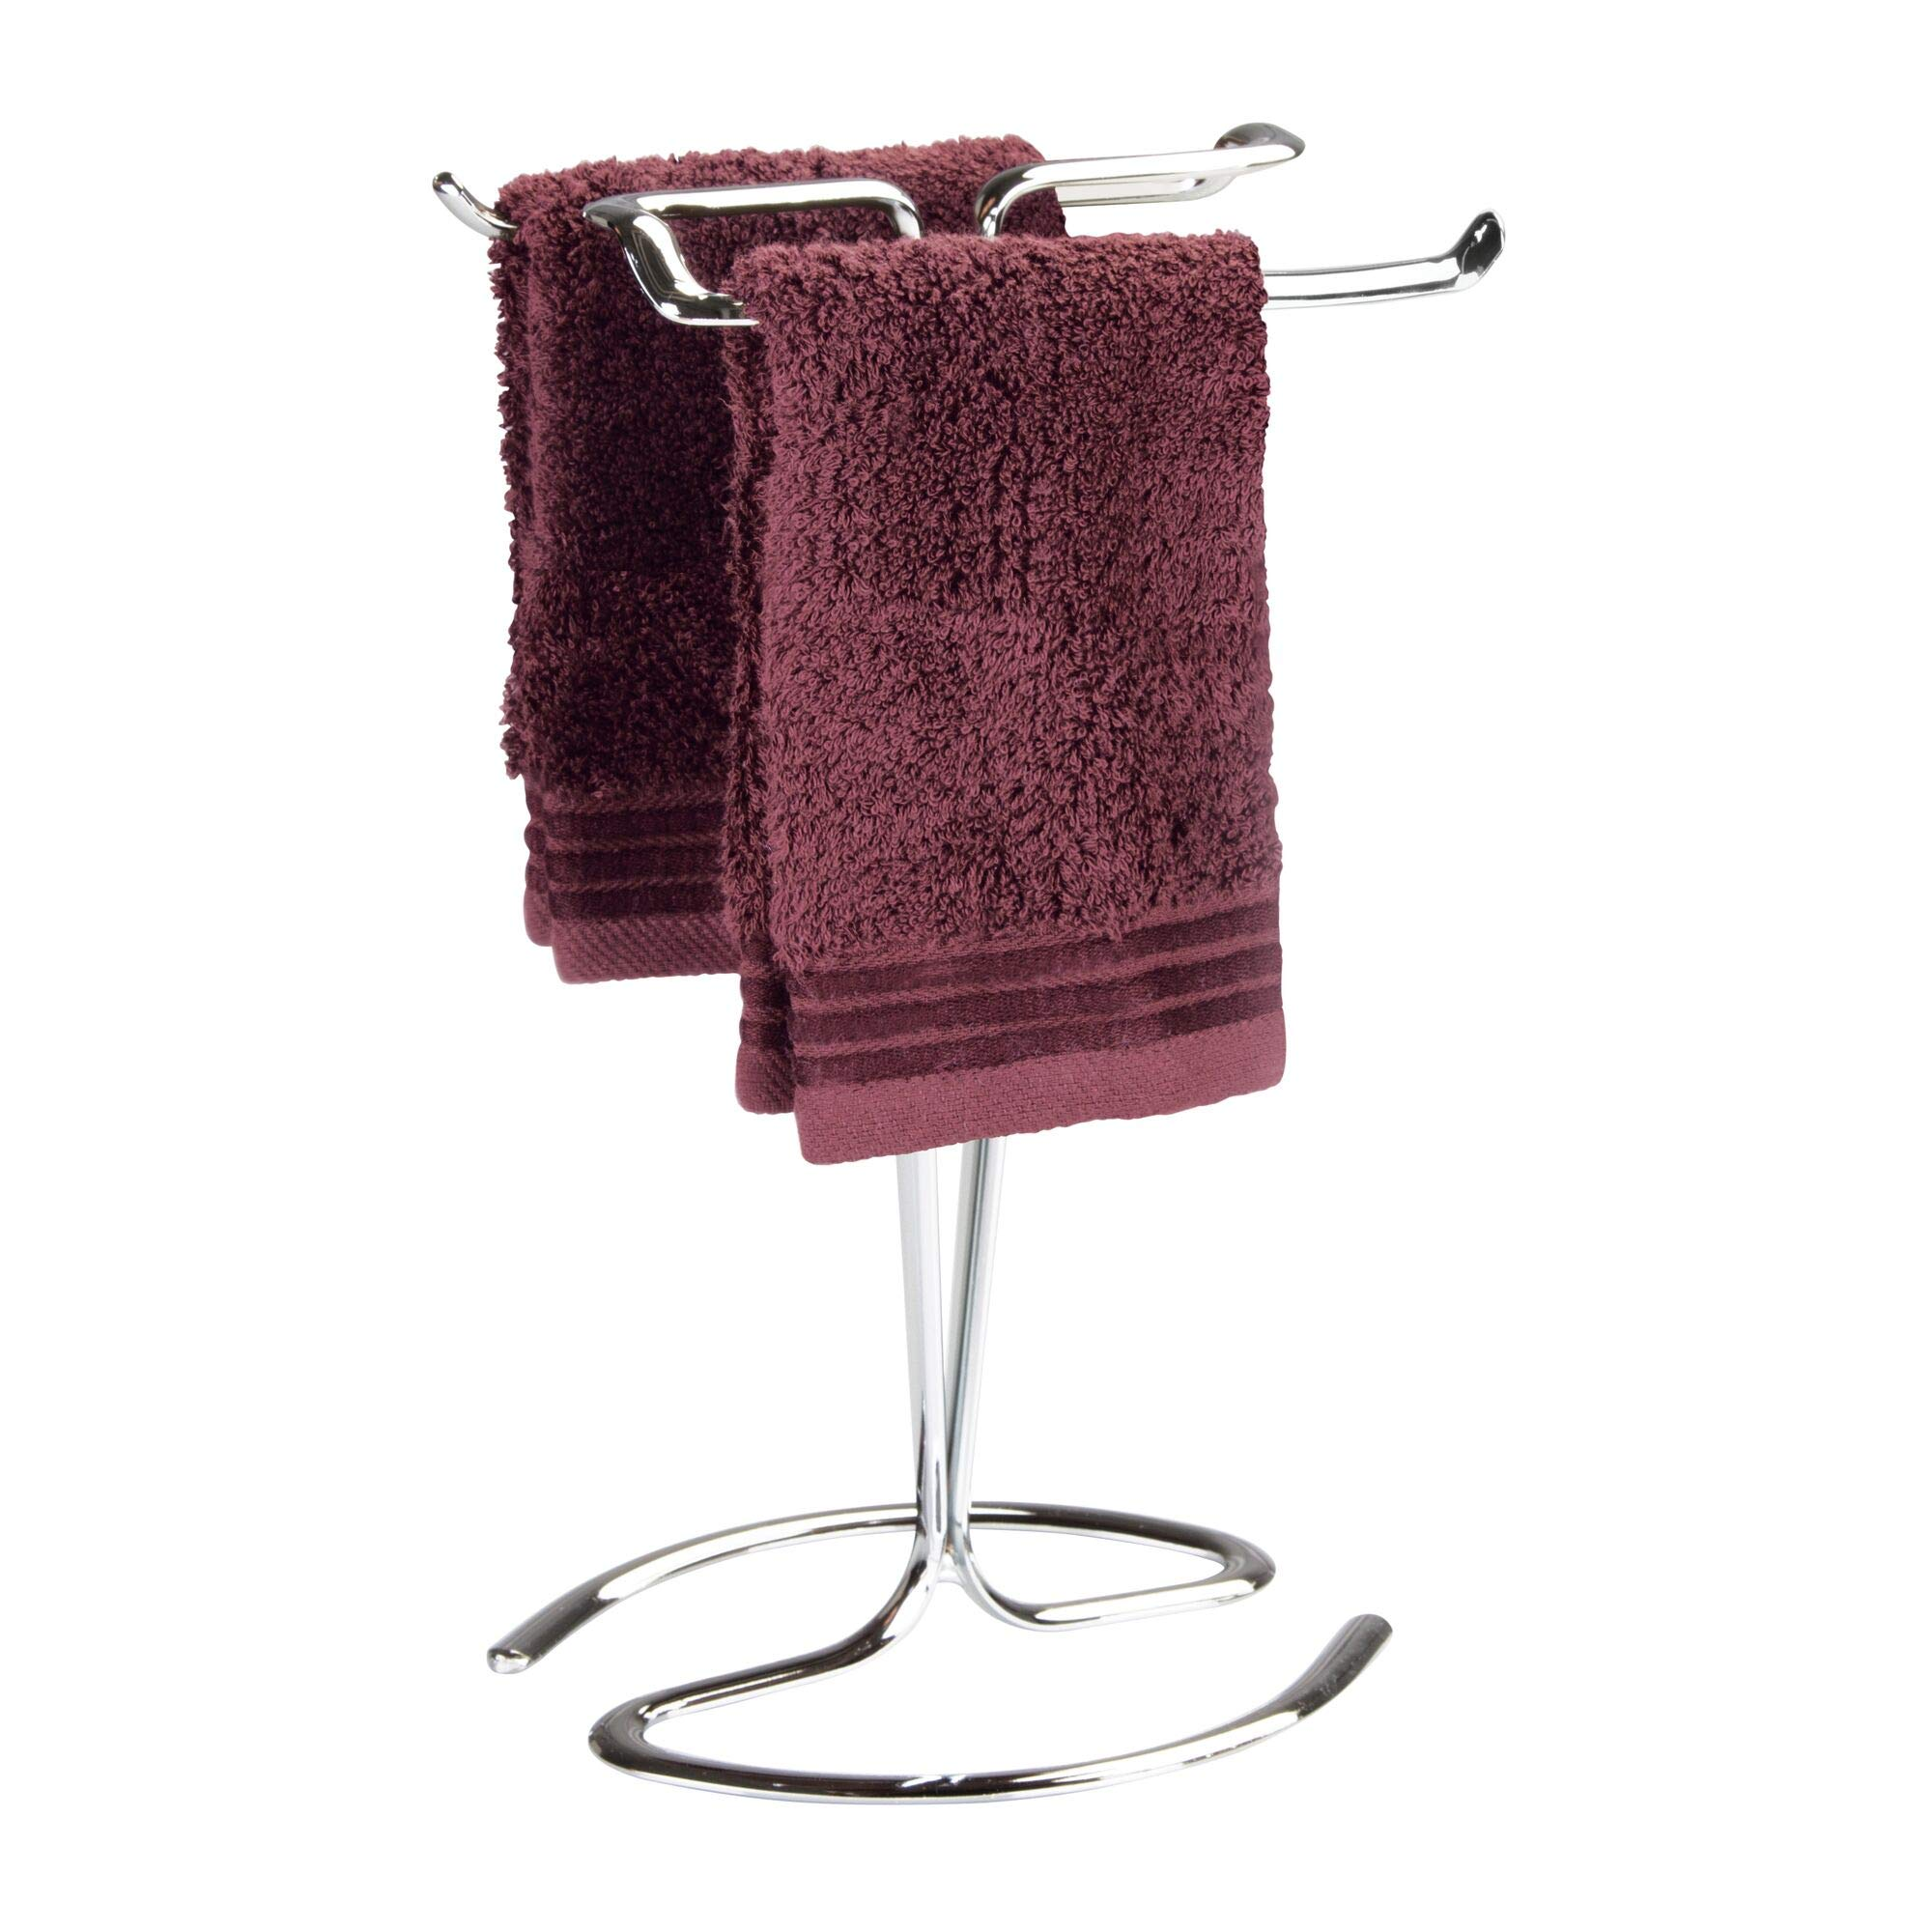 iDesign Axis Metal Hand Towel Holder for Master Bathroom, Vanities, Countertops, Kitchen, Holds 2 Finger Tip Towels, Chrome by iDesign